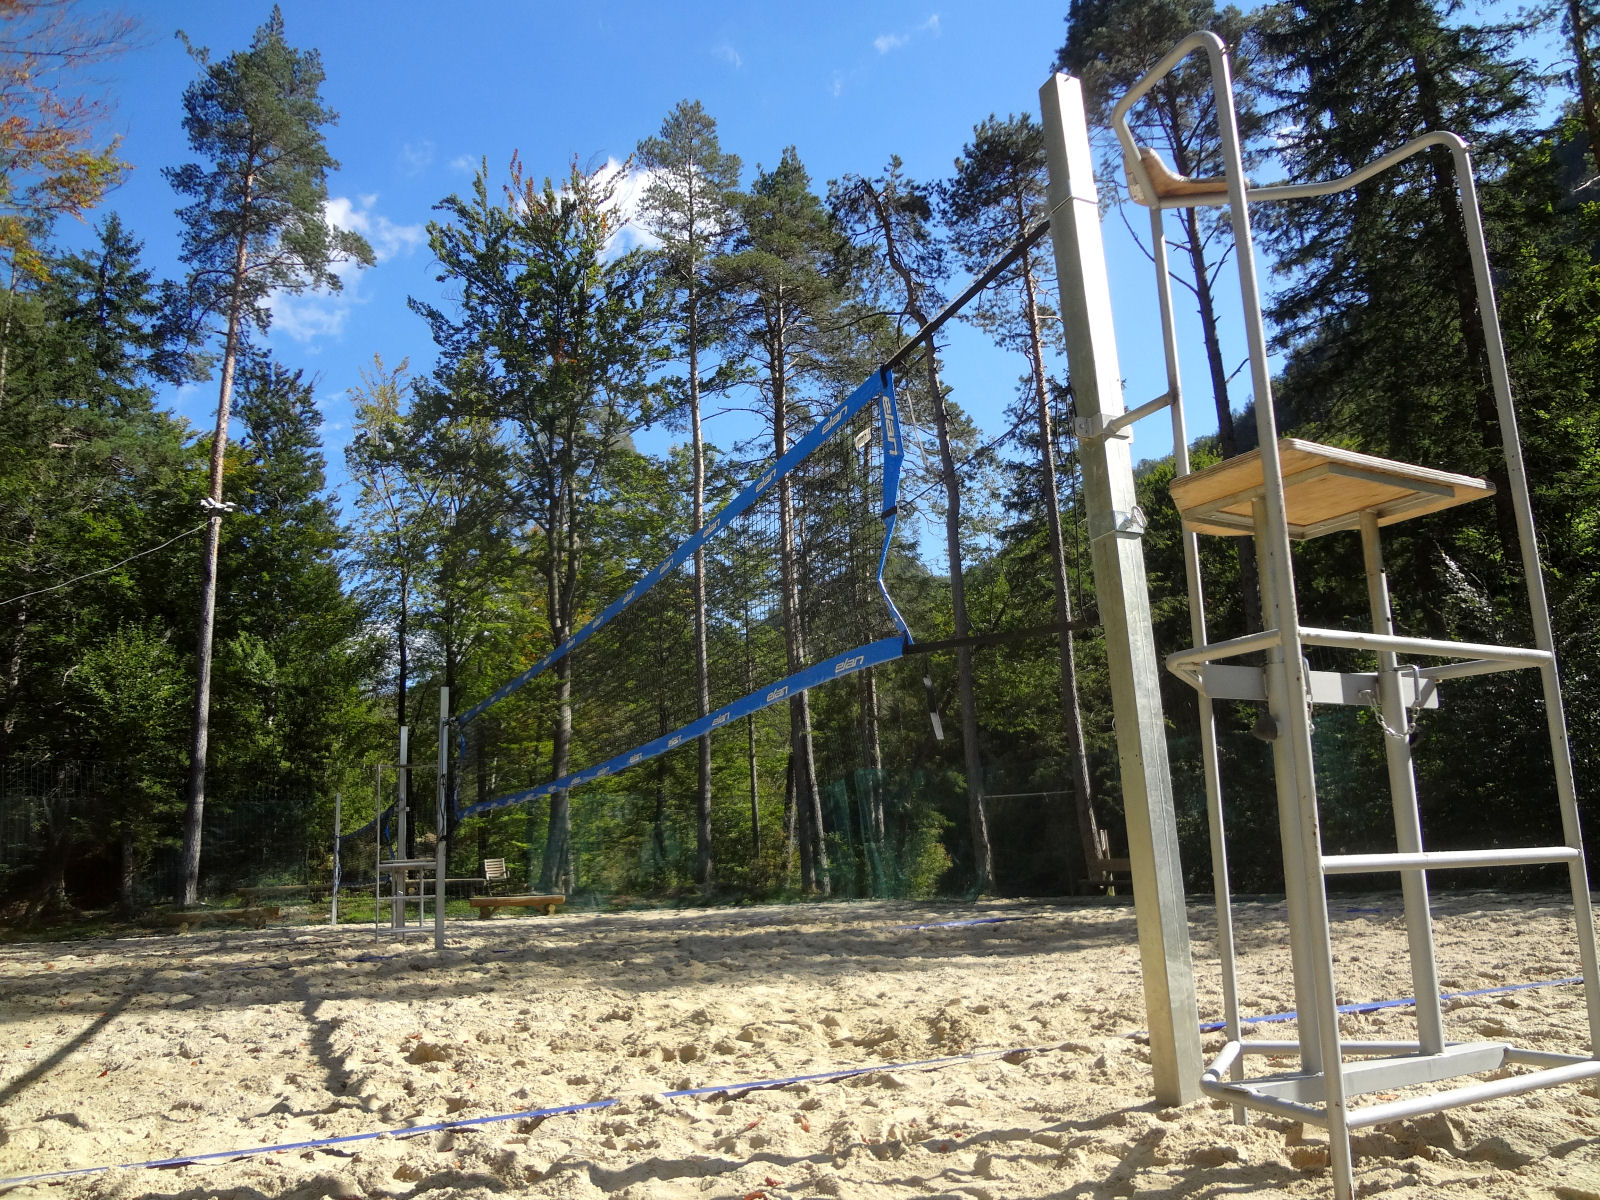 beach-volley-courts-recreation-park-zavrsnica